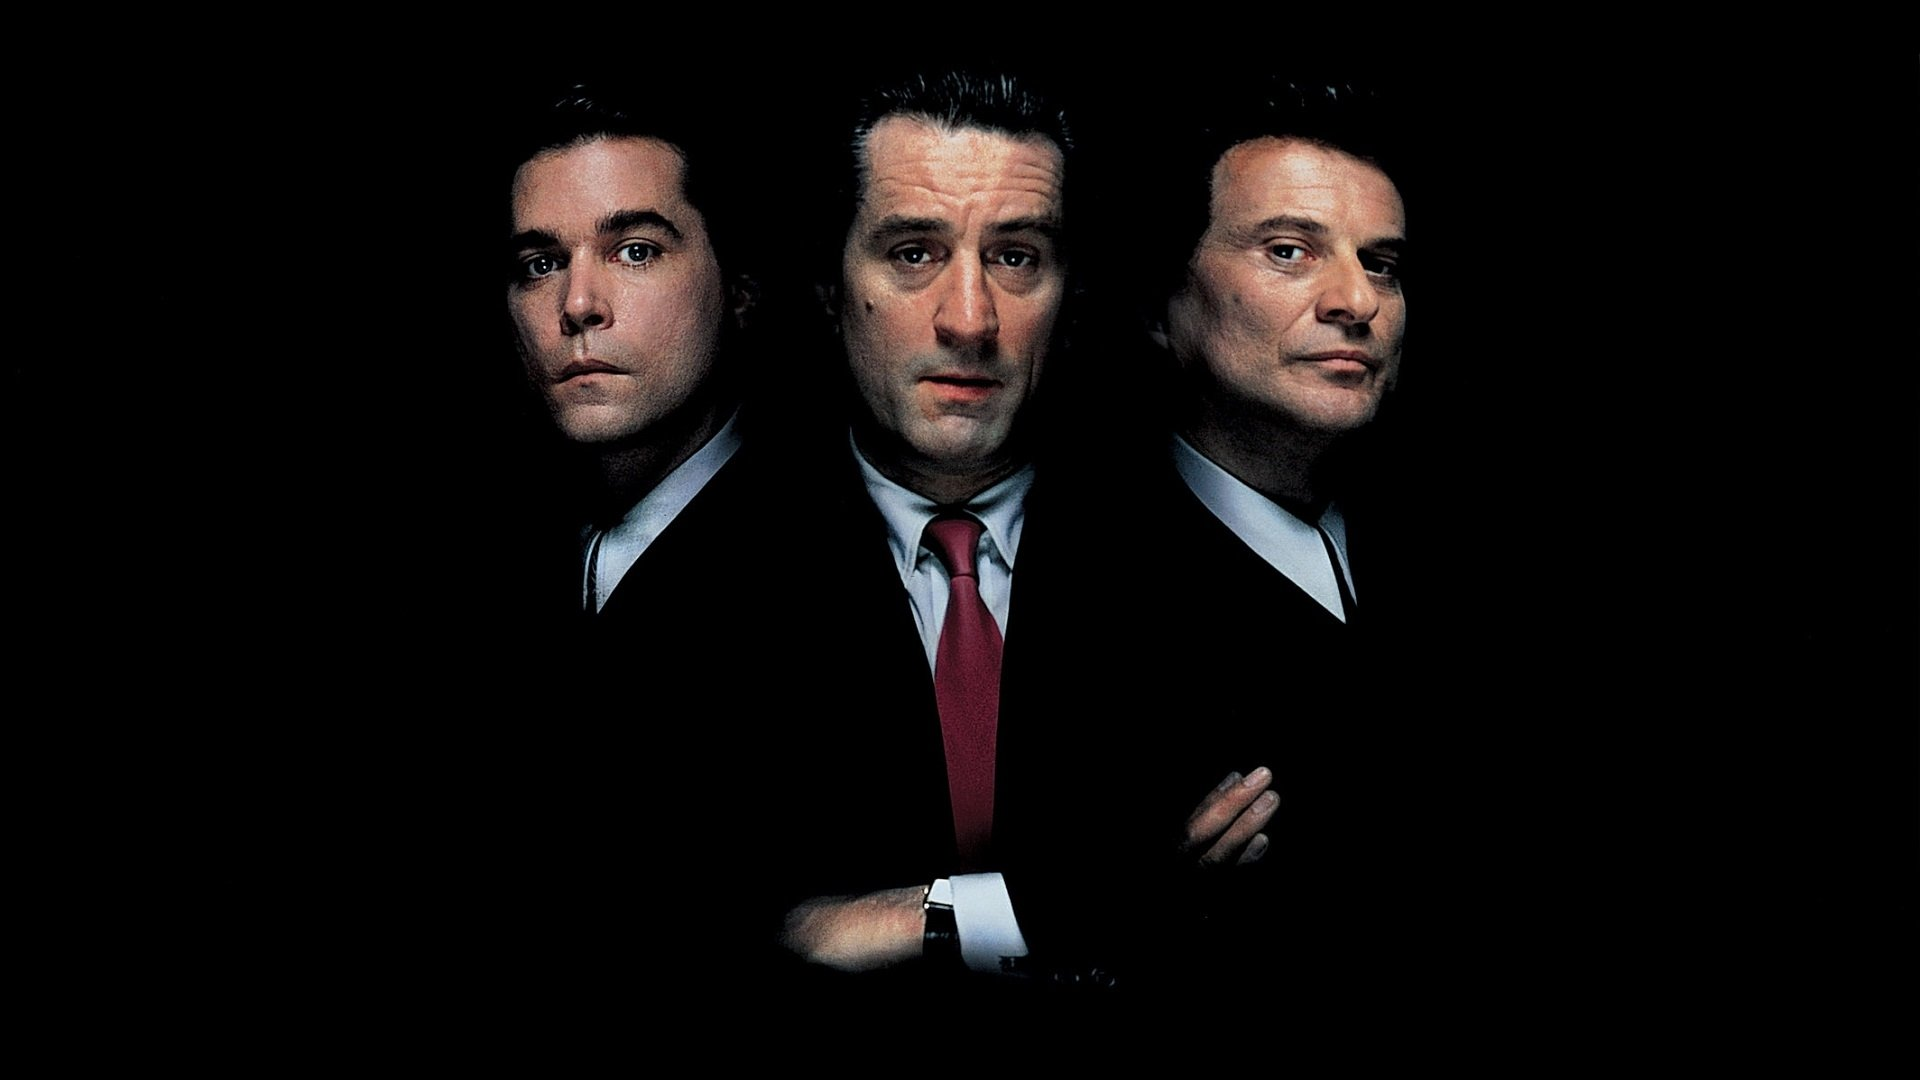 1920x1080 - Goodfellas Wallpapers 17